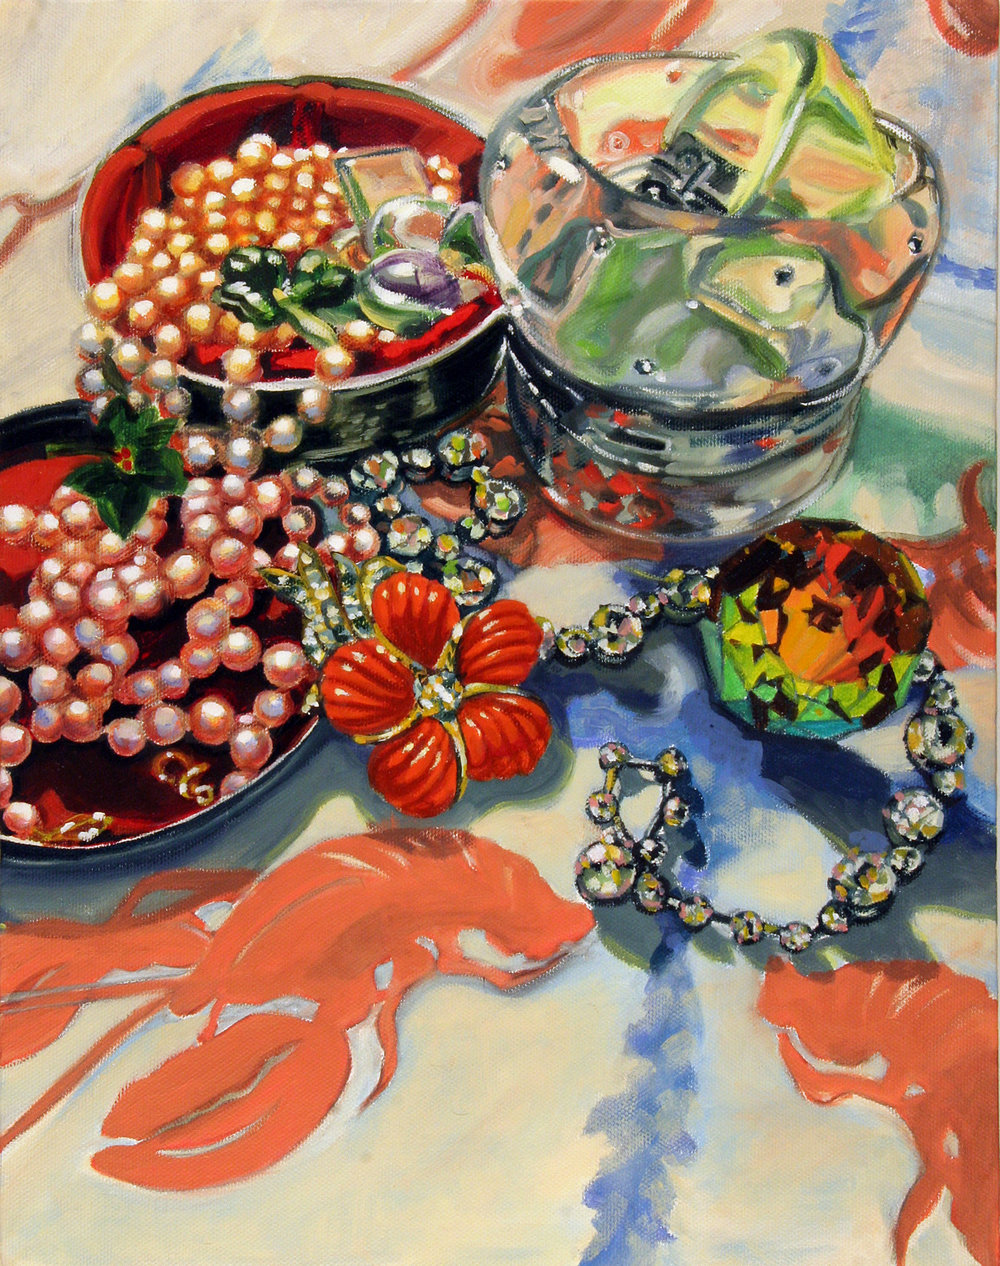 Banquet © 2007 Oil on canvas 14 x 11""